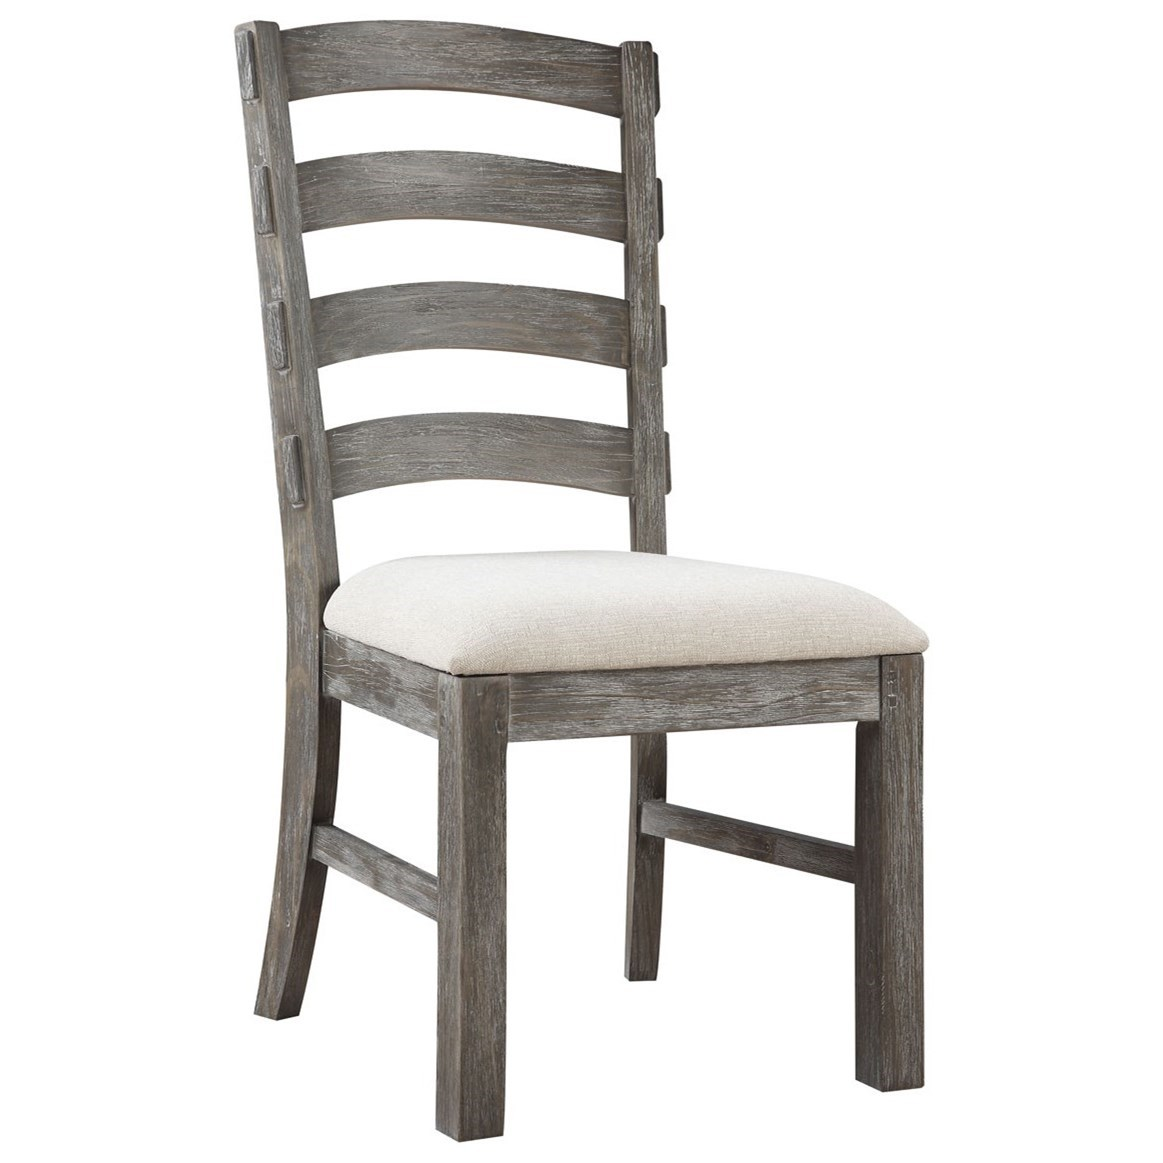 Paladin Slat Back Side Chair with Upholstered Seat by Emerald at Northeast Factory Direct